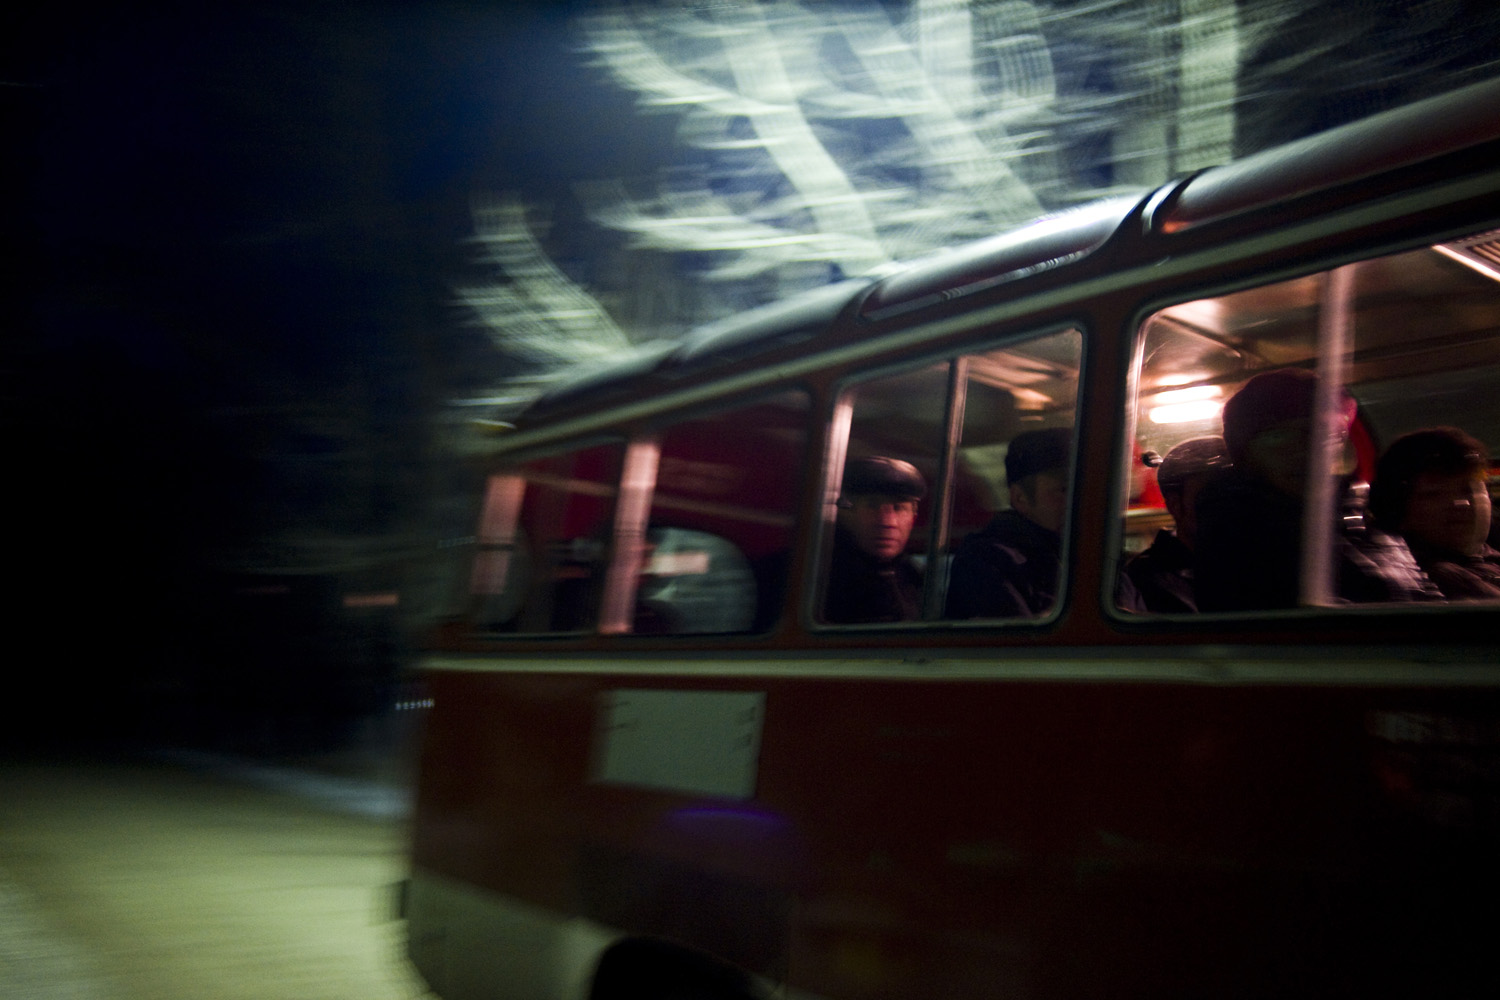 Uranium mine workers take the early-morning bus in December 2009 to the mine in Shantobe, Kazakhstan, which is operated by the Kazakh government. The town was originally founded by the Soviets to house miners—today, the entire town is still employed by the mine.